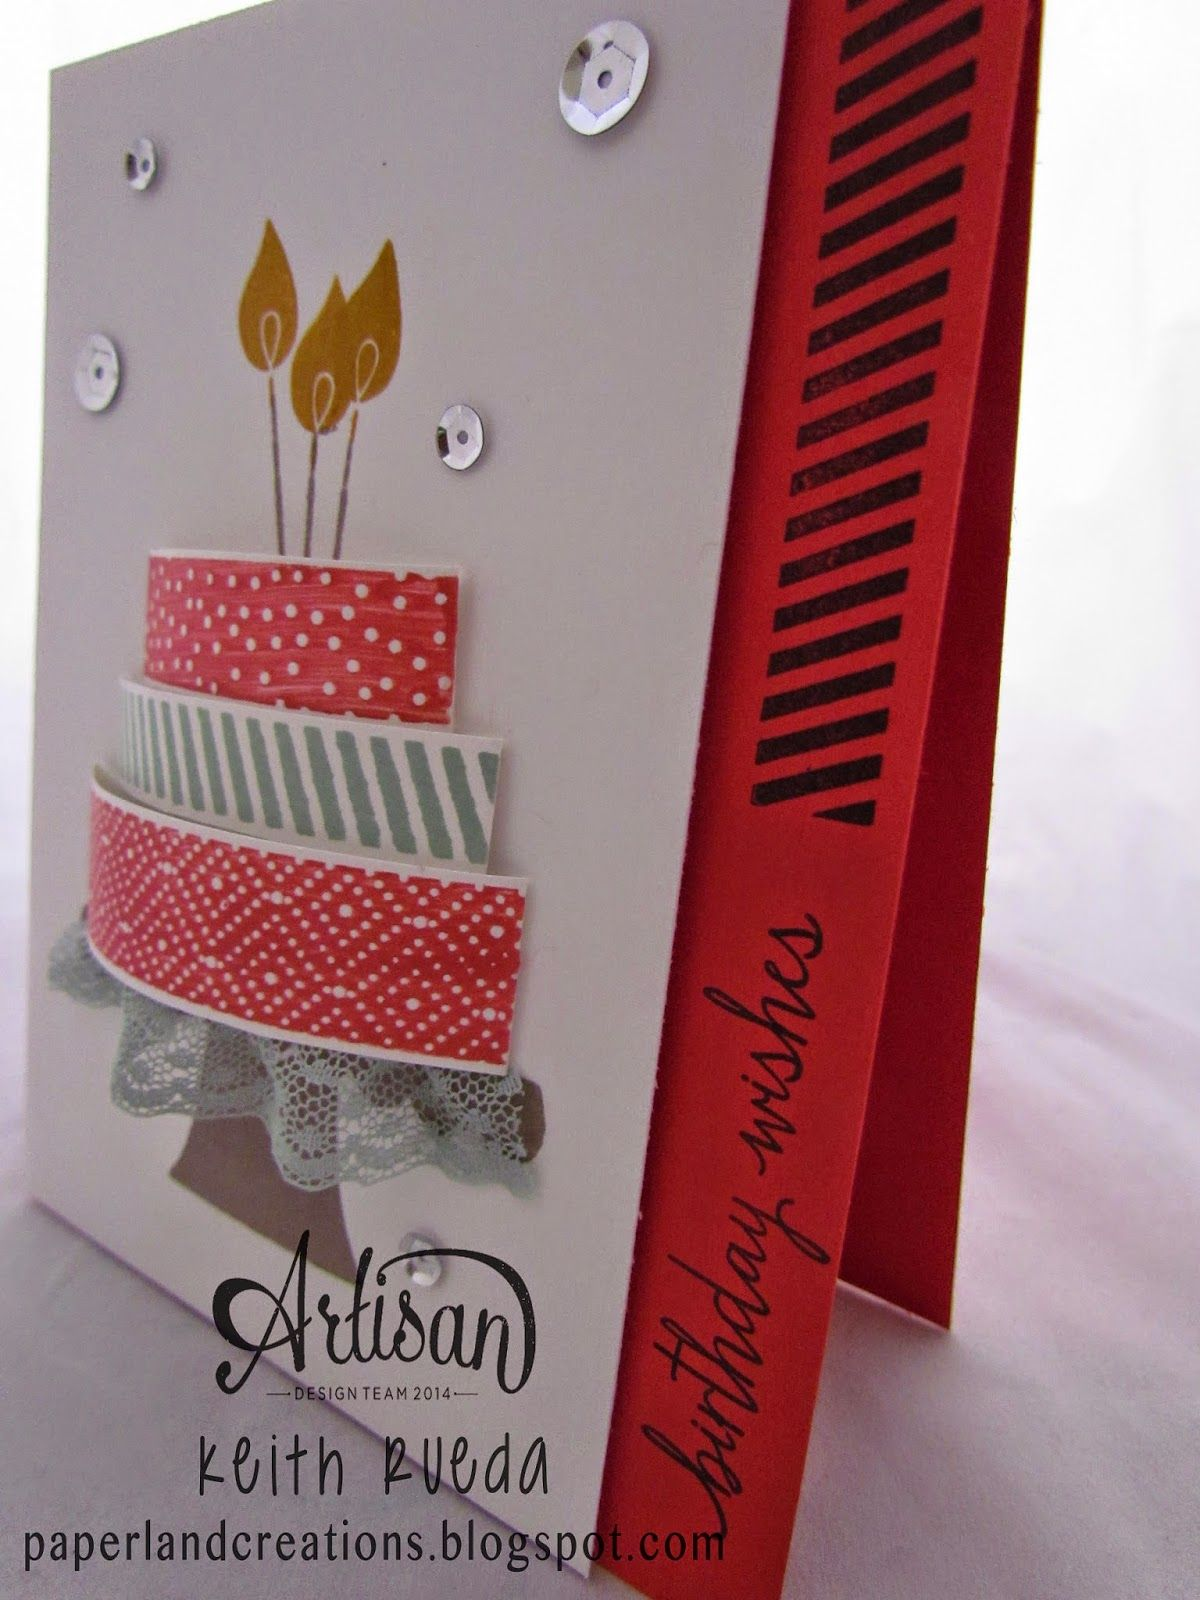 Paperland creations artisan blog hop build a birthday stampin up